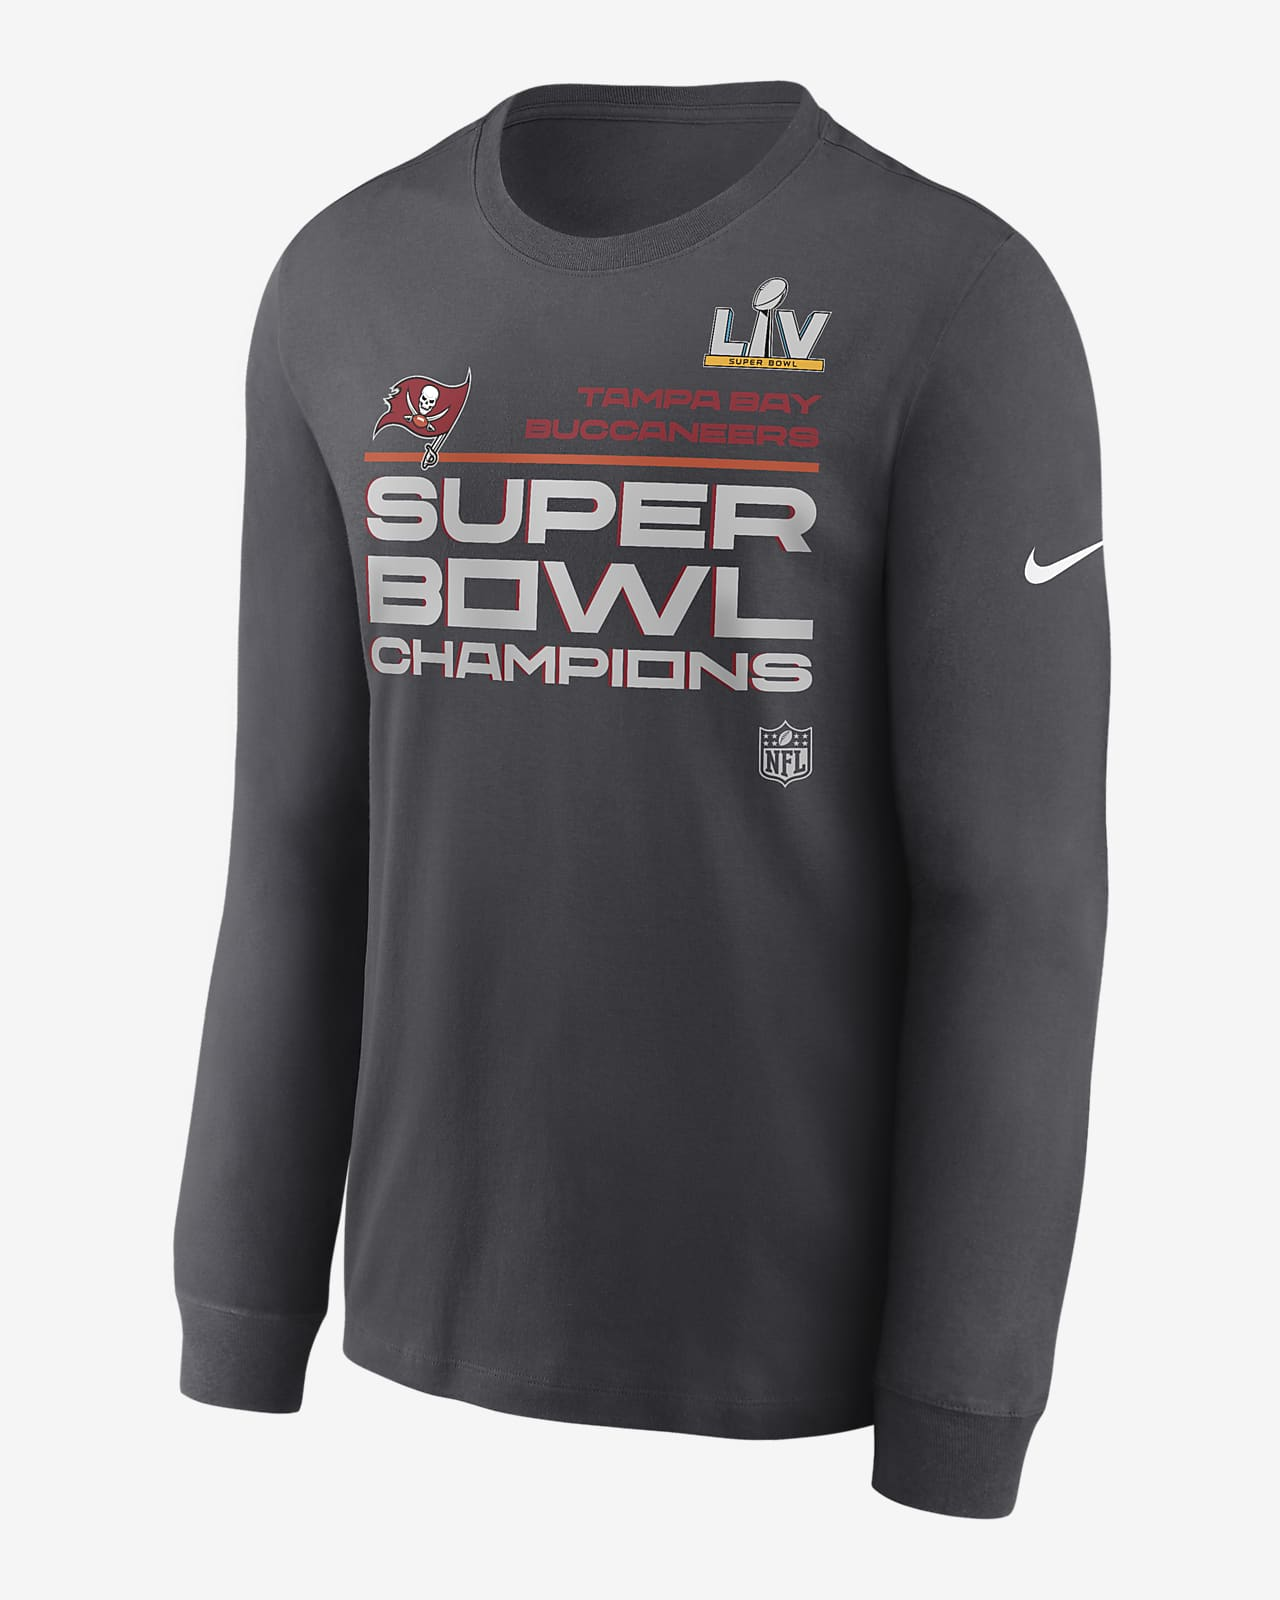 Nike Super Bowl LV Champions Trophy Collection (NFL Tampa Bay Buccaneers) Men's Long-Sleeve T-Shirt